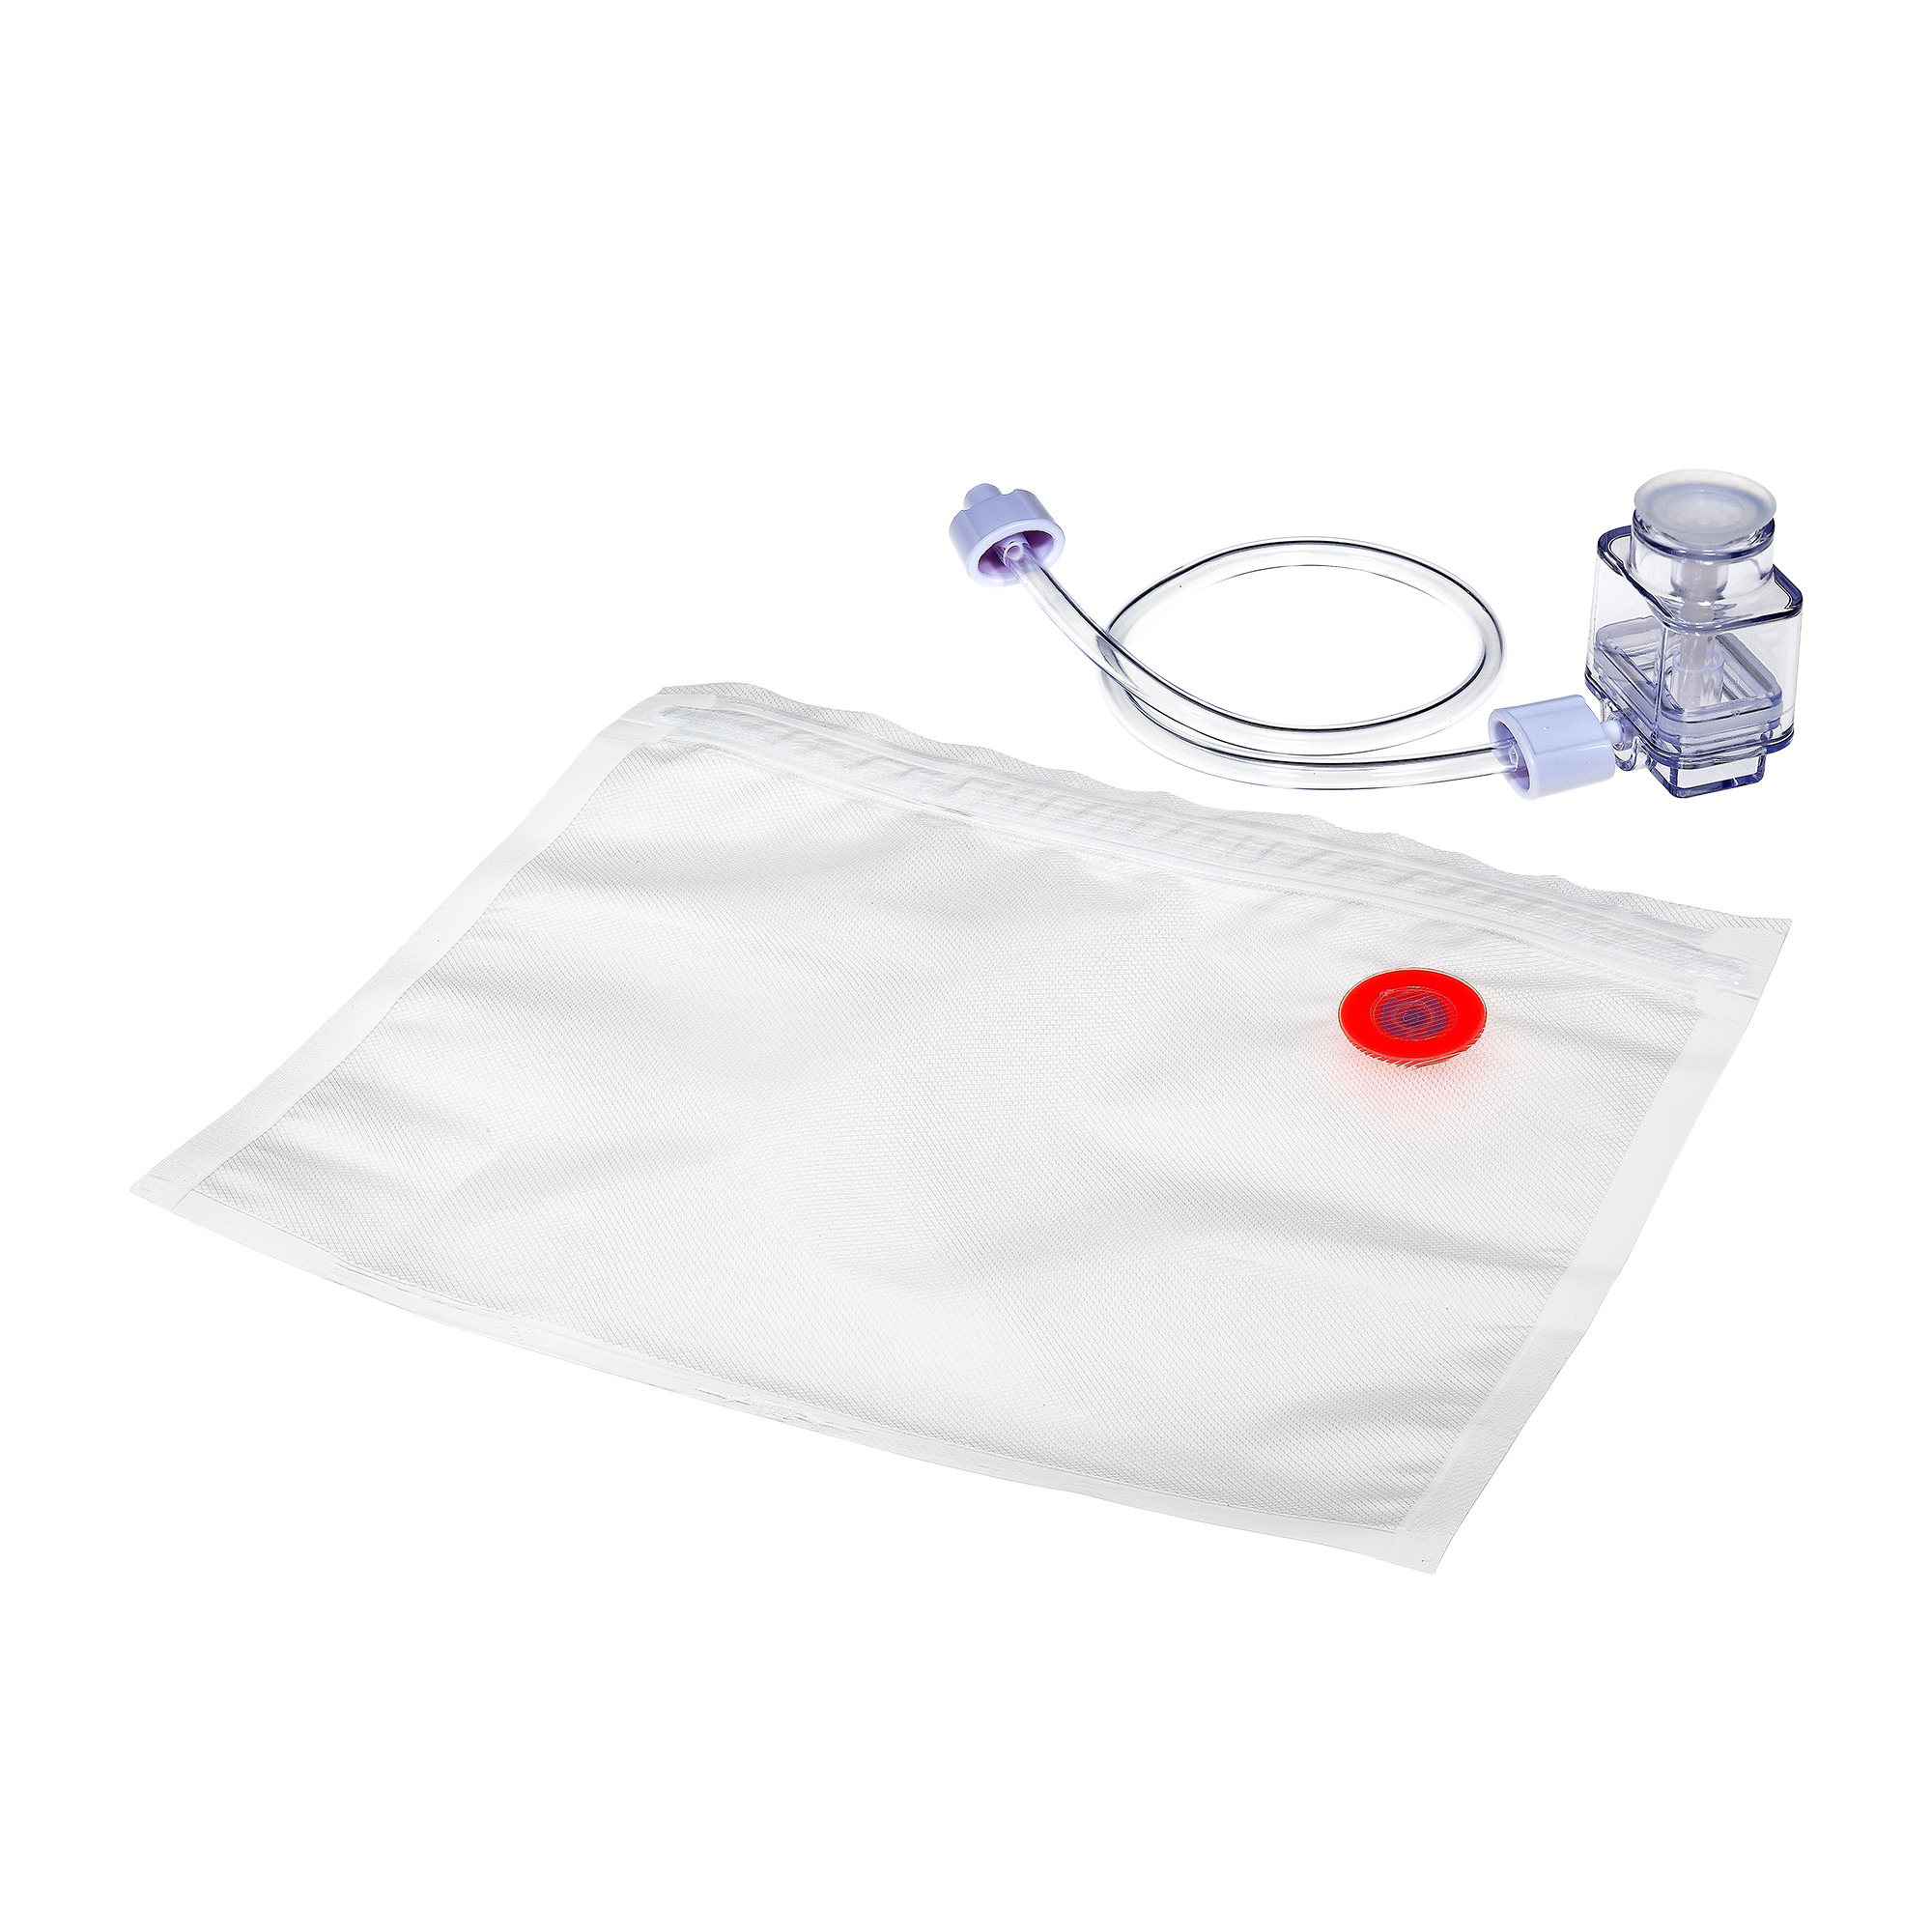 Laica Reusable Vacuum Bags & Suction Kit 3pk